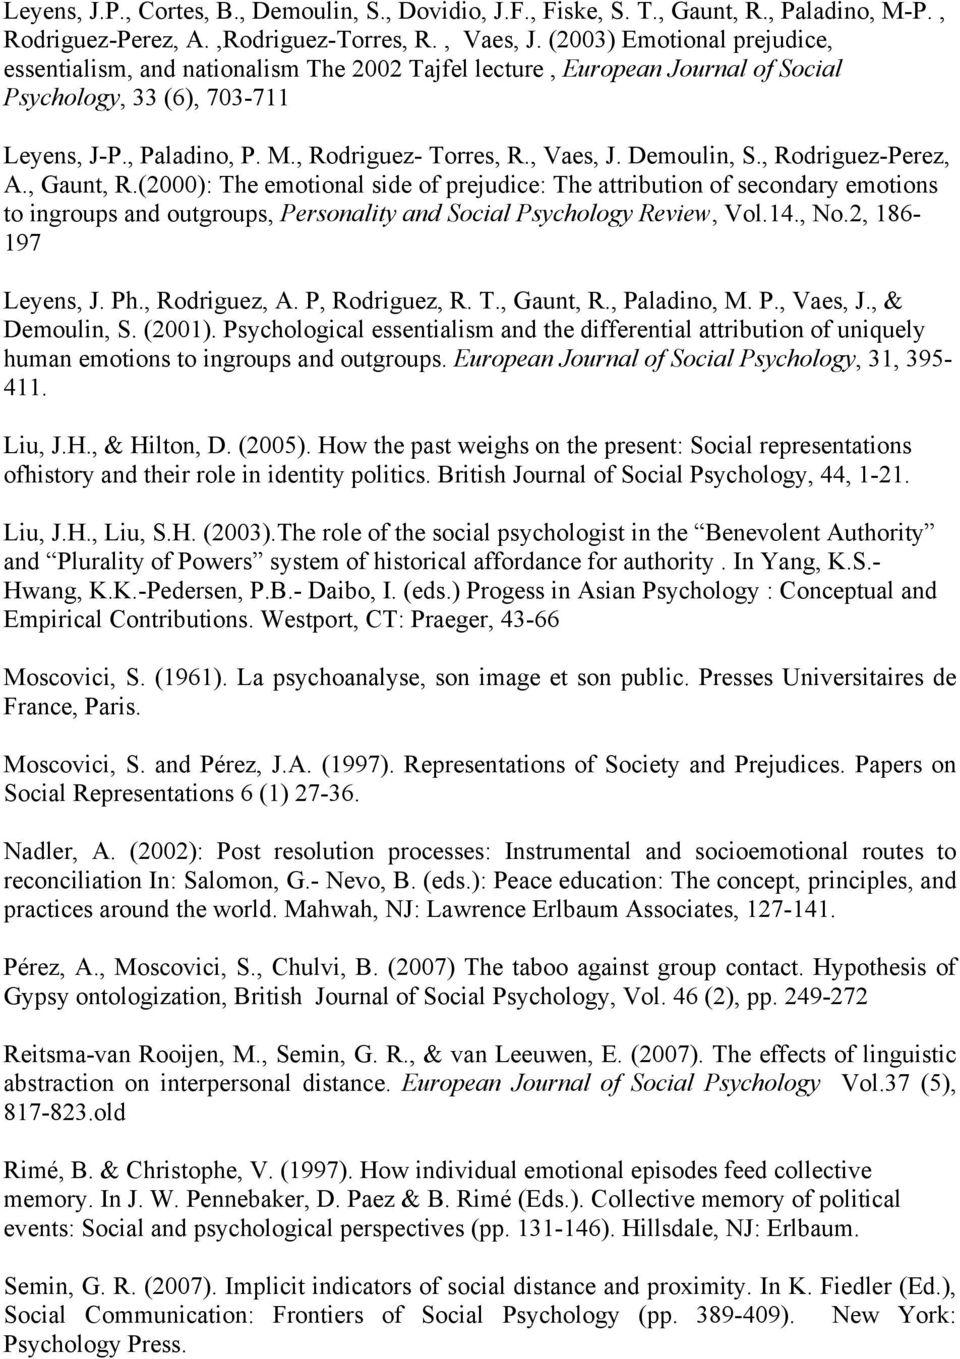 Demoulin, S., Rodriguez-Perez, A., Gaunt, R.(2000): The emotional side of prejudice: The attribution of secondary emotions to ingroups and outgroups, Personality and Social Psychology Review, Vol.14.